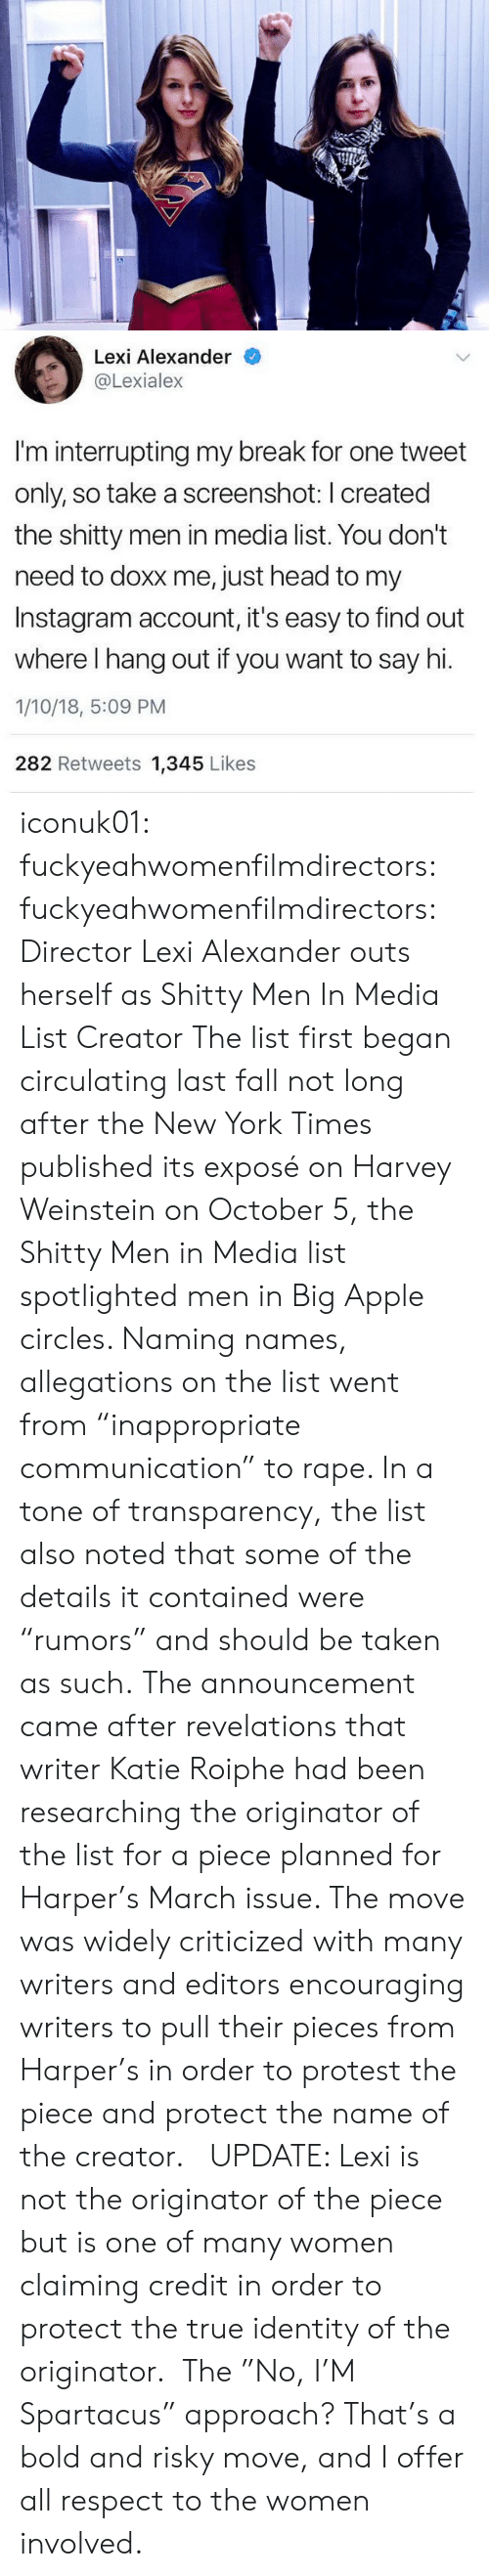 "Apple, Bilbo, and Fall: Lexi Alexander  @Lexiale:x  I'm interrupting my break for one tweet  only, so take a screenshot: I created  the shitty men in media list. You don't  need to doxx me, just head to my  Instagram account, it's easy to find out  where I hang out if you want to say hi.  1/10/18, 5:09 PM  282 Retweets 1,345 Likes iconuk01: fuckyeahwomenfilmdirectors:  fuckyeahwomenfilmdirectors:  Director Lexi Alexander outs herself as Shitty Men In Media List Creator The list first began circulating last fall not long after the New York Times published its exposé on Harvey Weinstein on October 5, the Shitty Men in Media list spotlighted men in Big Apple circles. Naming names, allegations on the list went from ""inappropriate communication"" to rape. In a tone of transparency, the list also noted that some of the details it contained were ""rumors"" and should be taken as such. The announcement came after revelations that writer Katie Roiphe had been researching the originator of the list for a piece planned for Harper's March issue. The move was widely criticized with many writers and editors encouraging writers to pull their pieces from Harper's in order to protest the piece and protect the name of the creator.    UPDATE: Lexi is not the originator of the piece but is one of many women claiming credit in order to protect the true identity of the originator.   The ""No, I'M Spartacus"" approach?  That's a bold and risky move, and I offer all respect to the women involved."